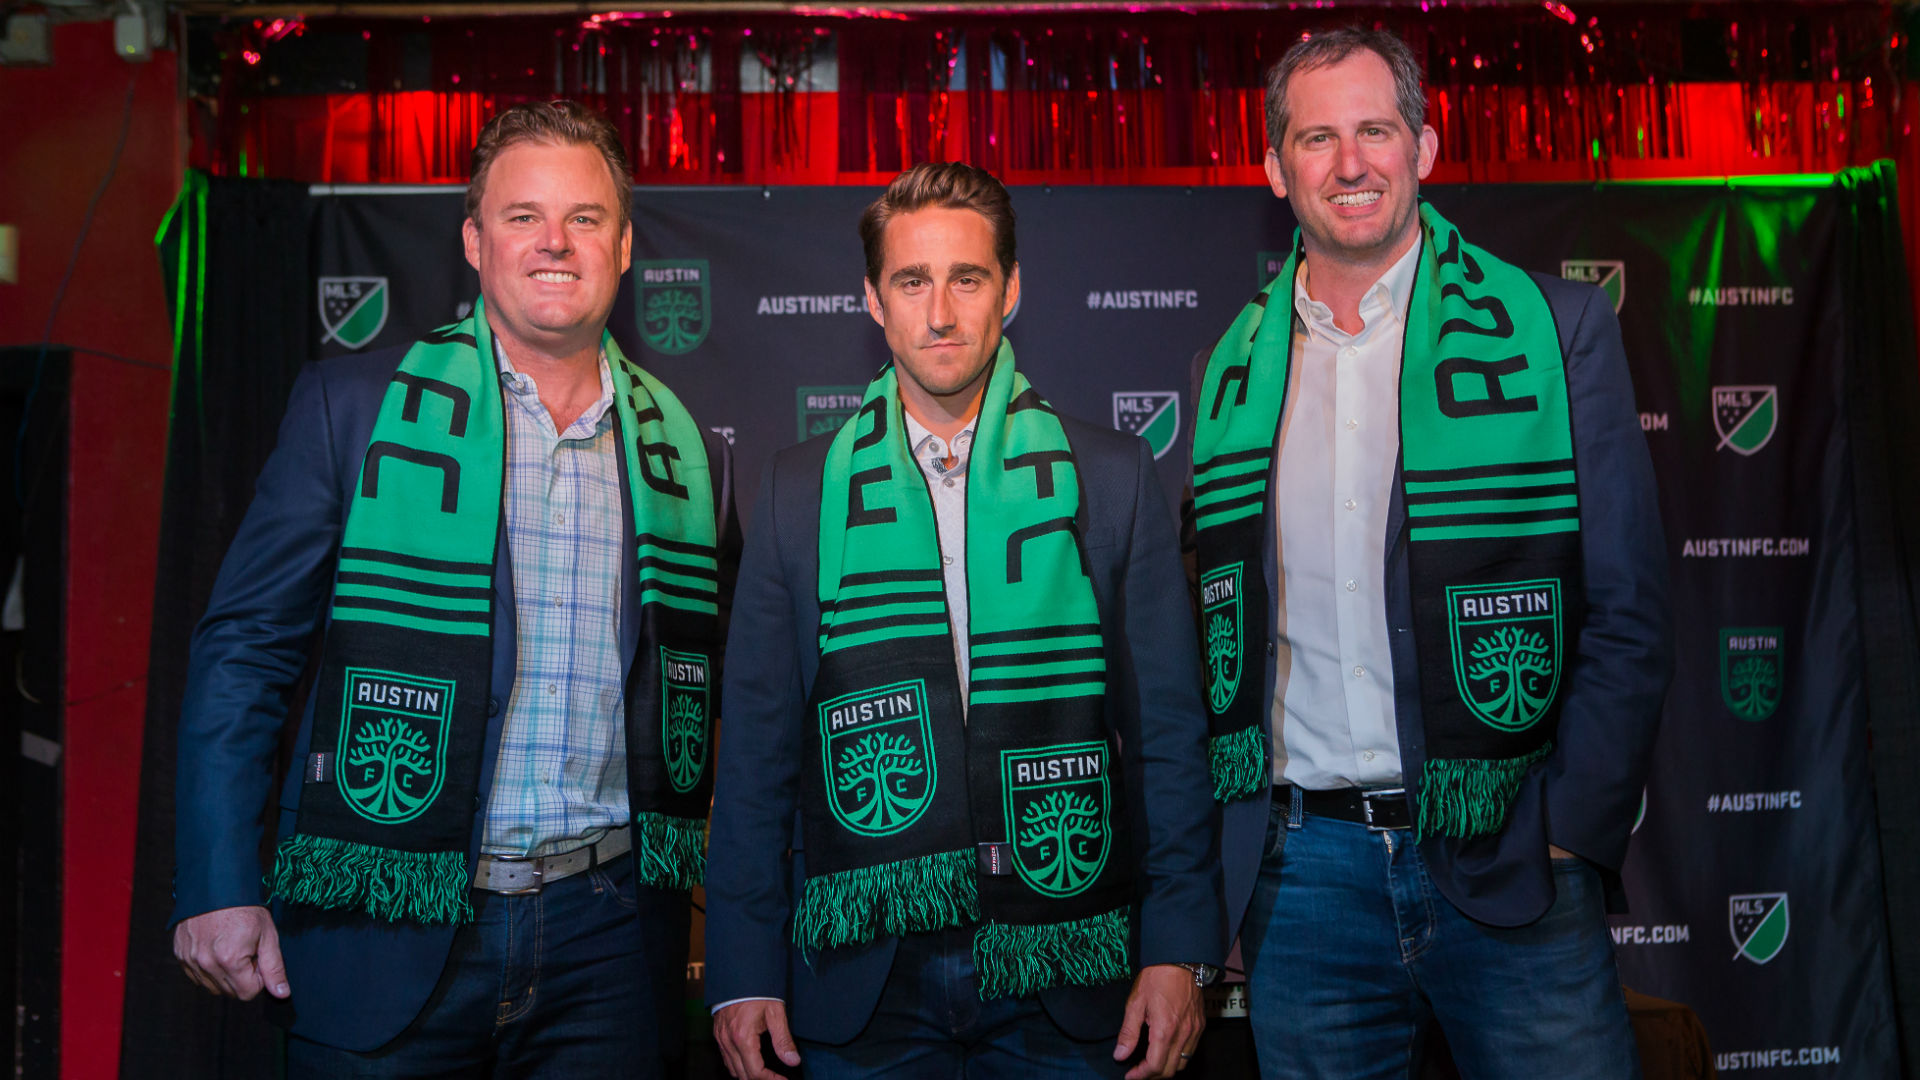 Austin FC hires ex-U.S. player Wolff as coach